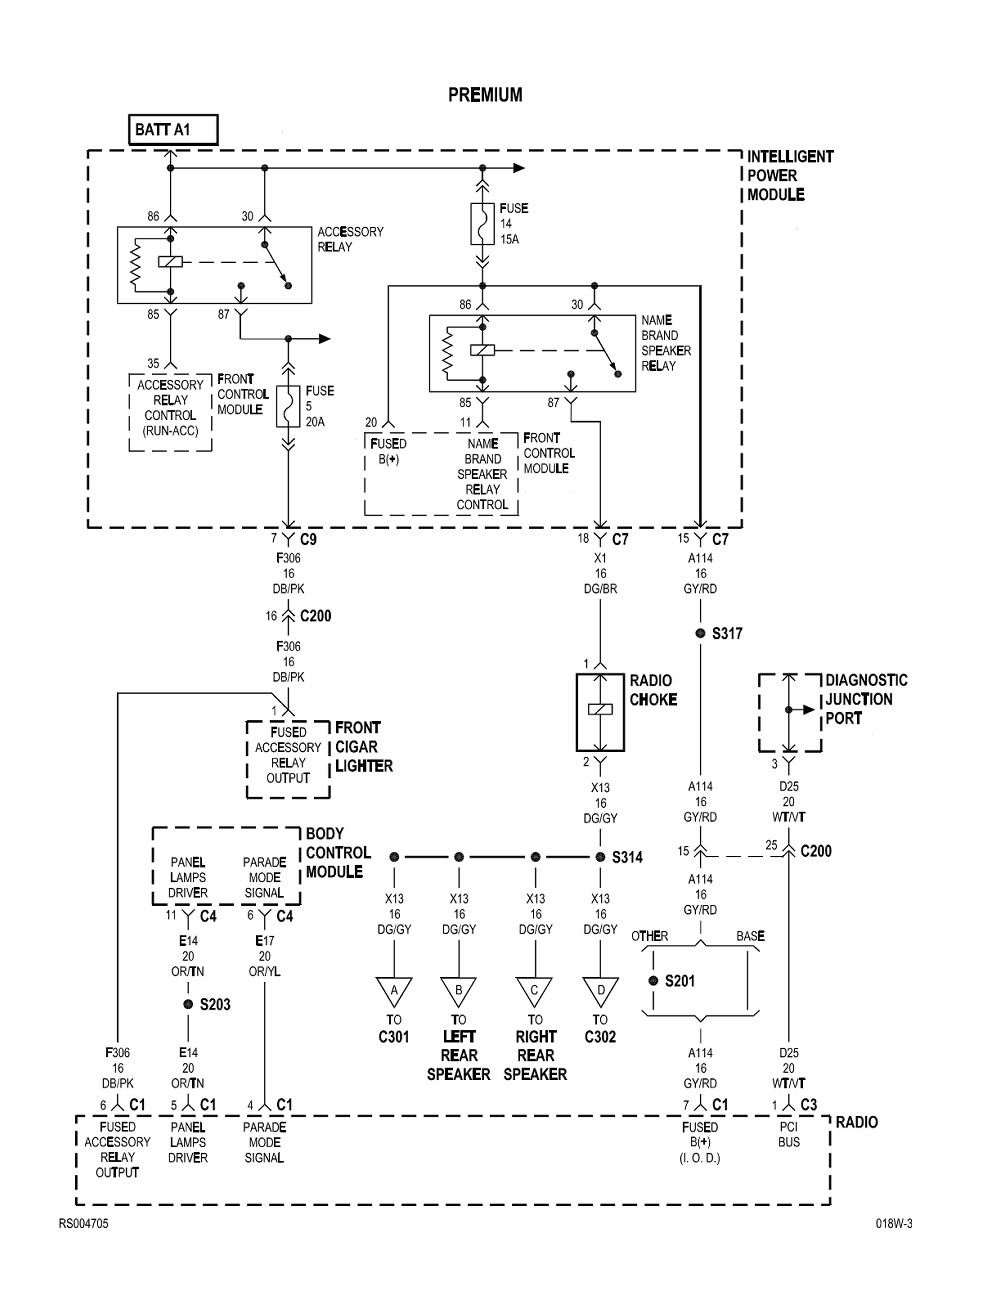 2005 Dodge Caravan Wiring Diagram